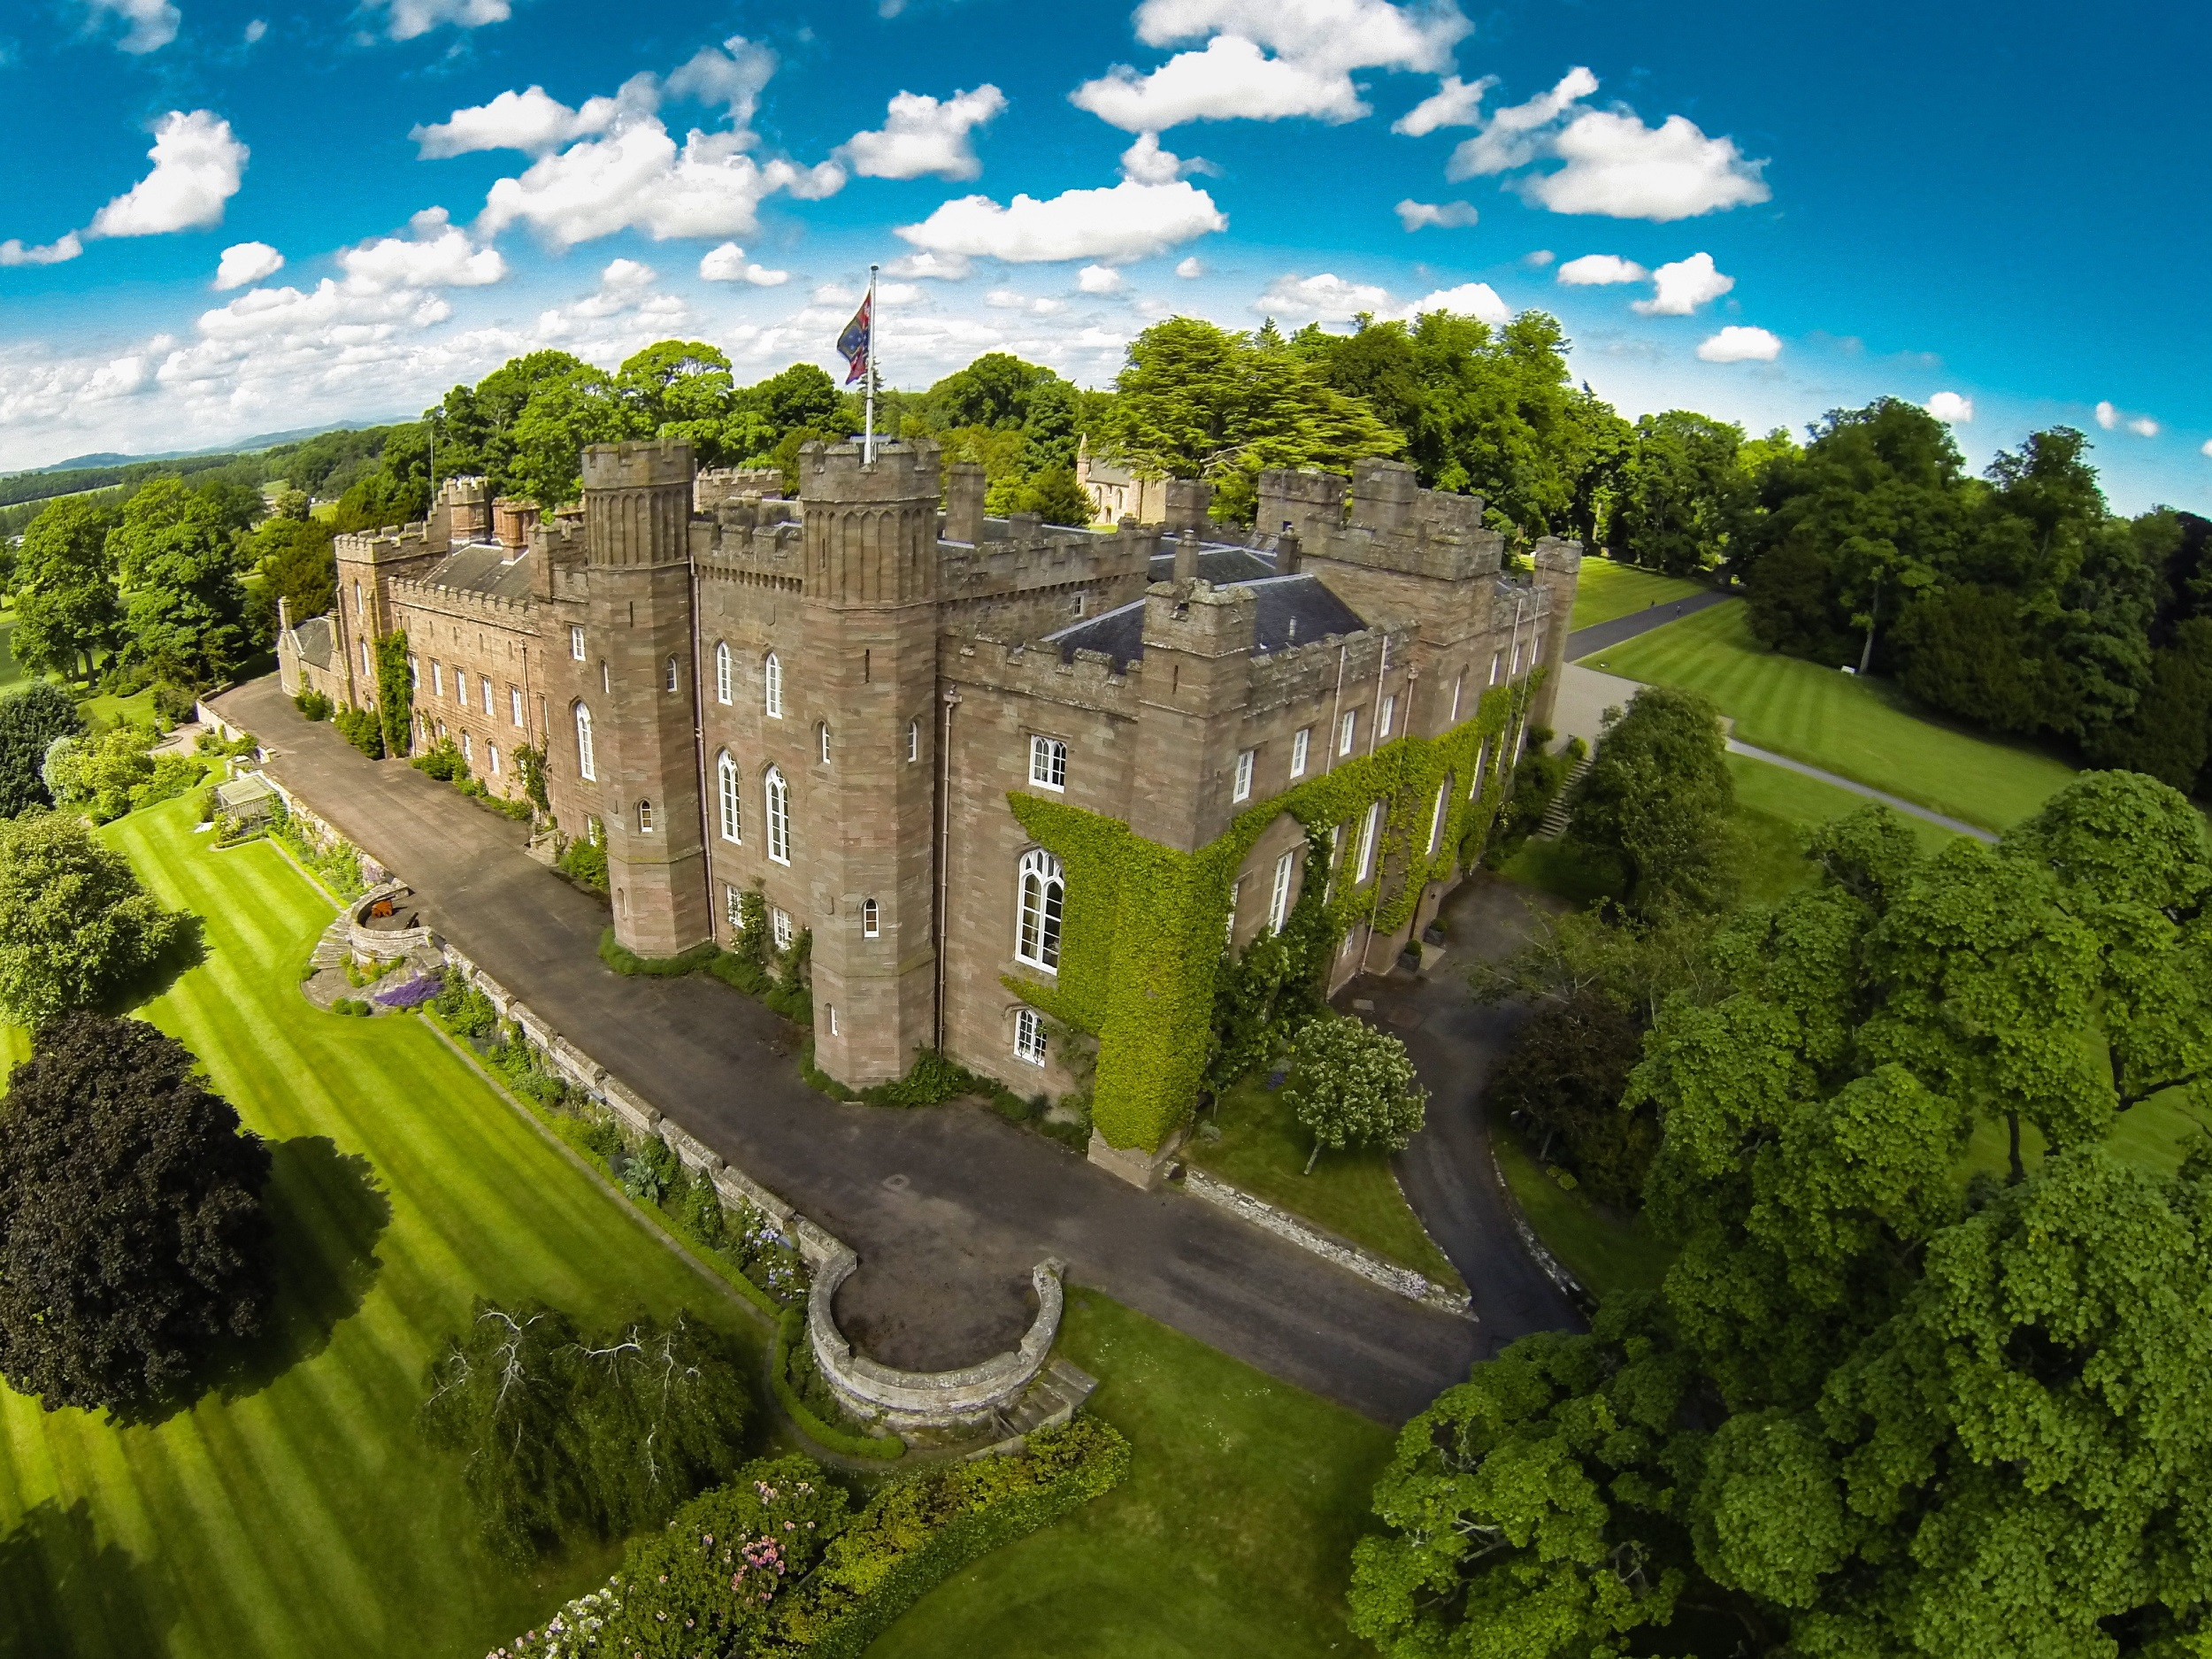 Scone Palace has been named as the venue for the production.